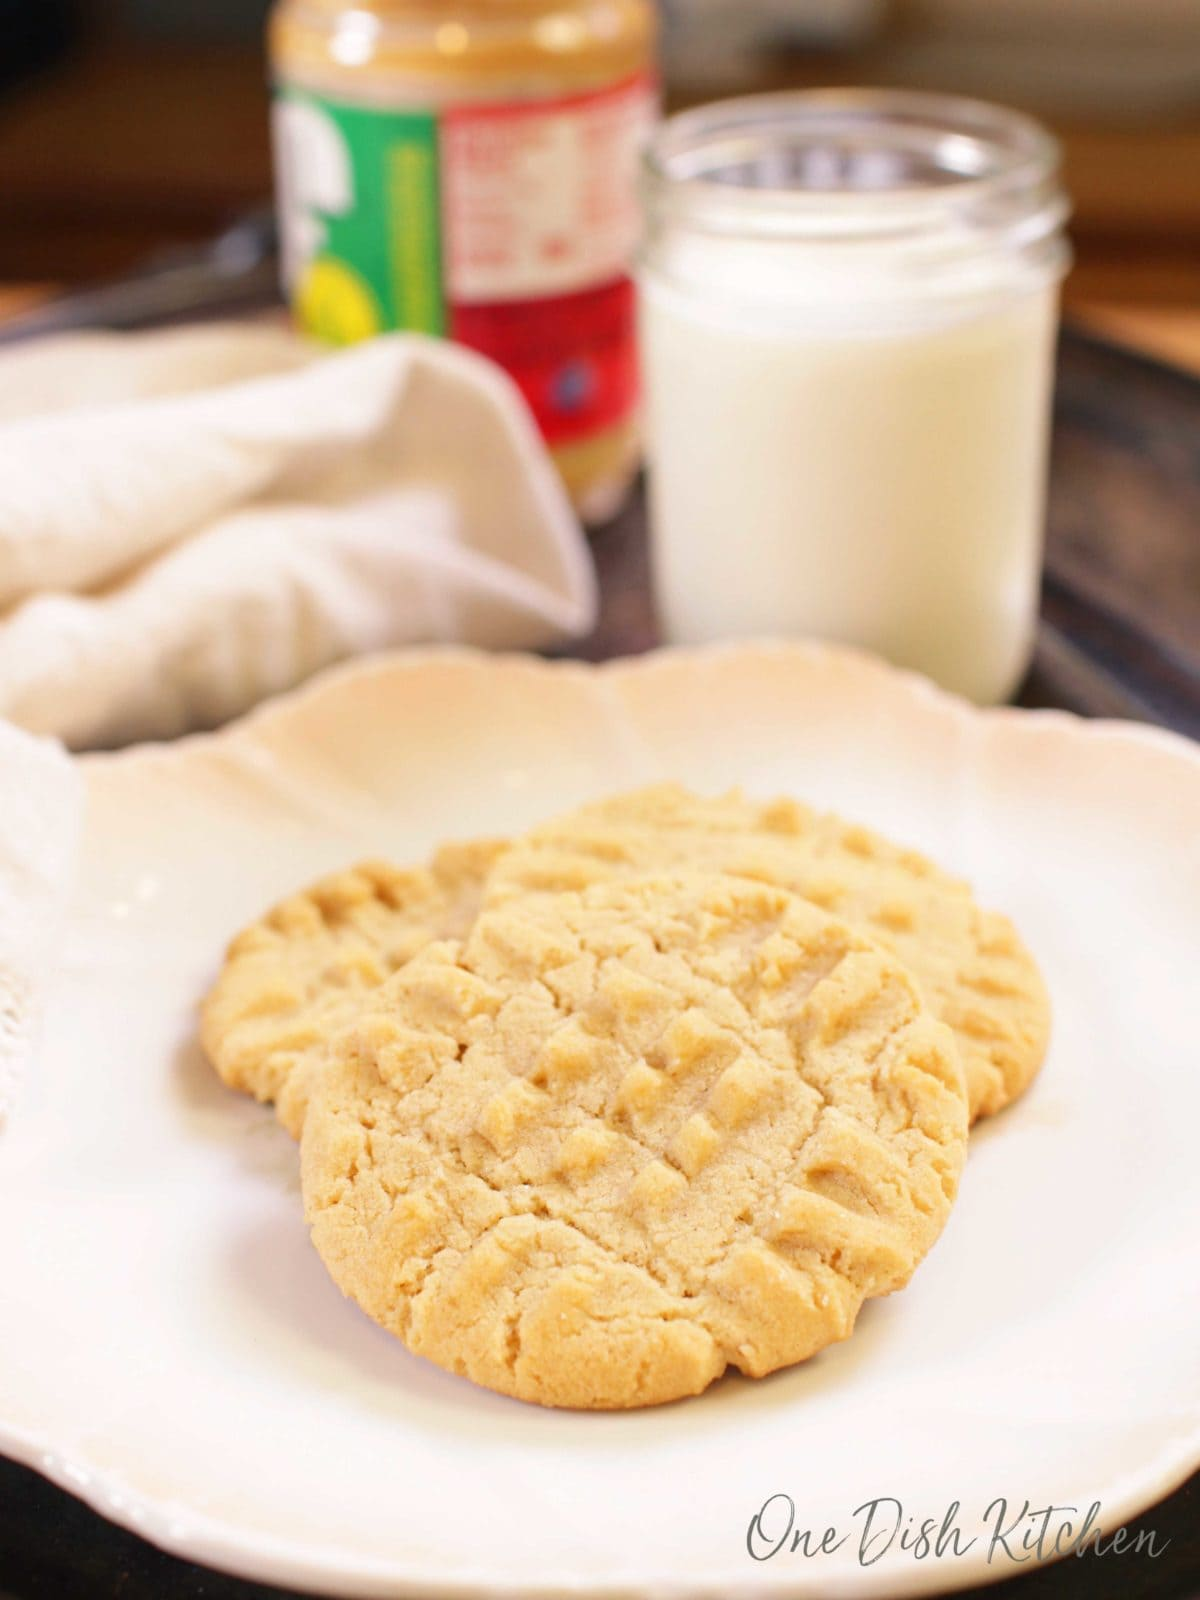 peanut butter cookies on a plate next to a jar of peanut butter and a glass of milk.